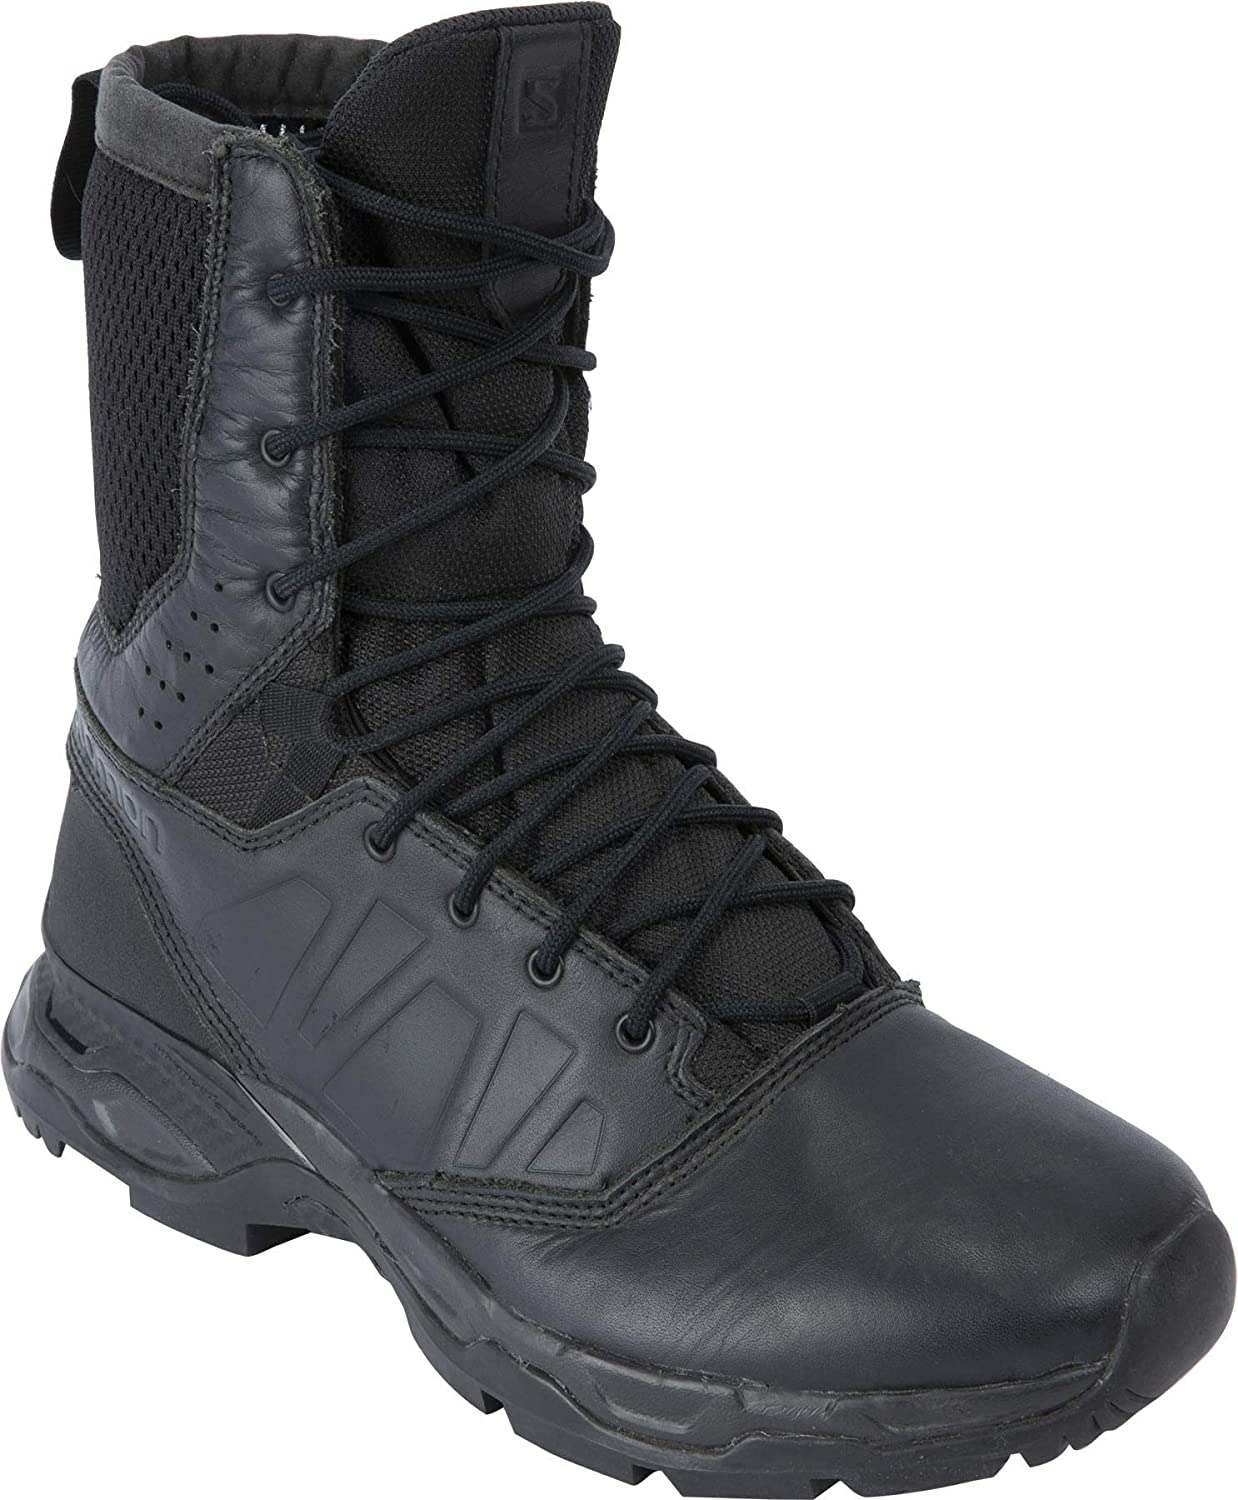 Salomon Unisex-Adult Urban Arlington Sale Special Price Mall Jungle Ultra Military and Tactical Bo